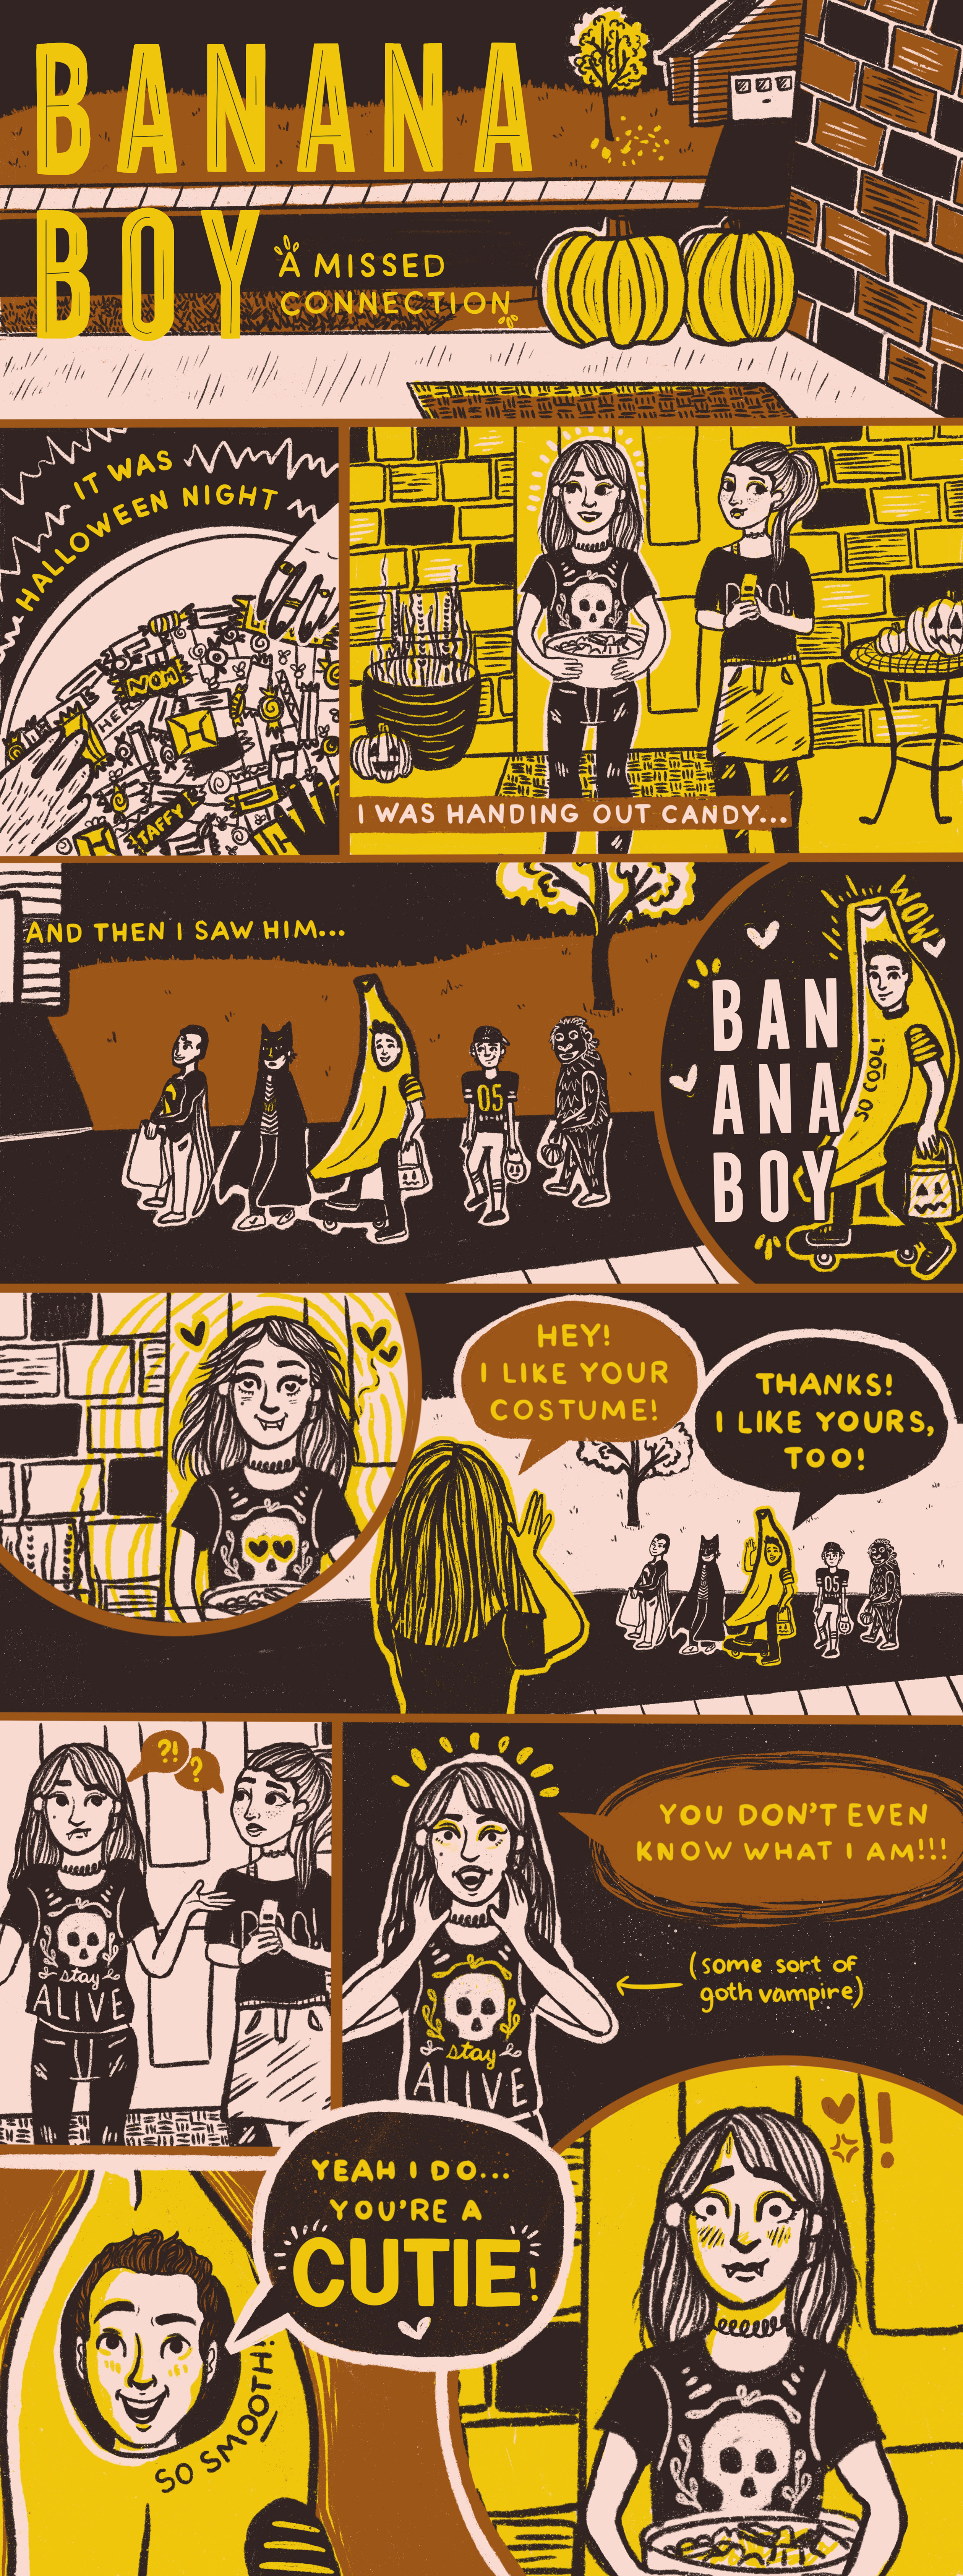 A comic about halloween night and a skateboarding boy dressed in a banana costume.